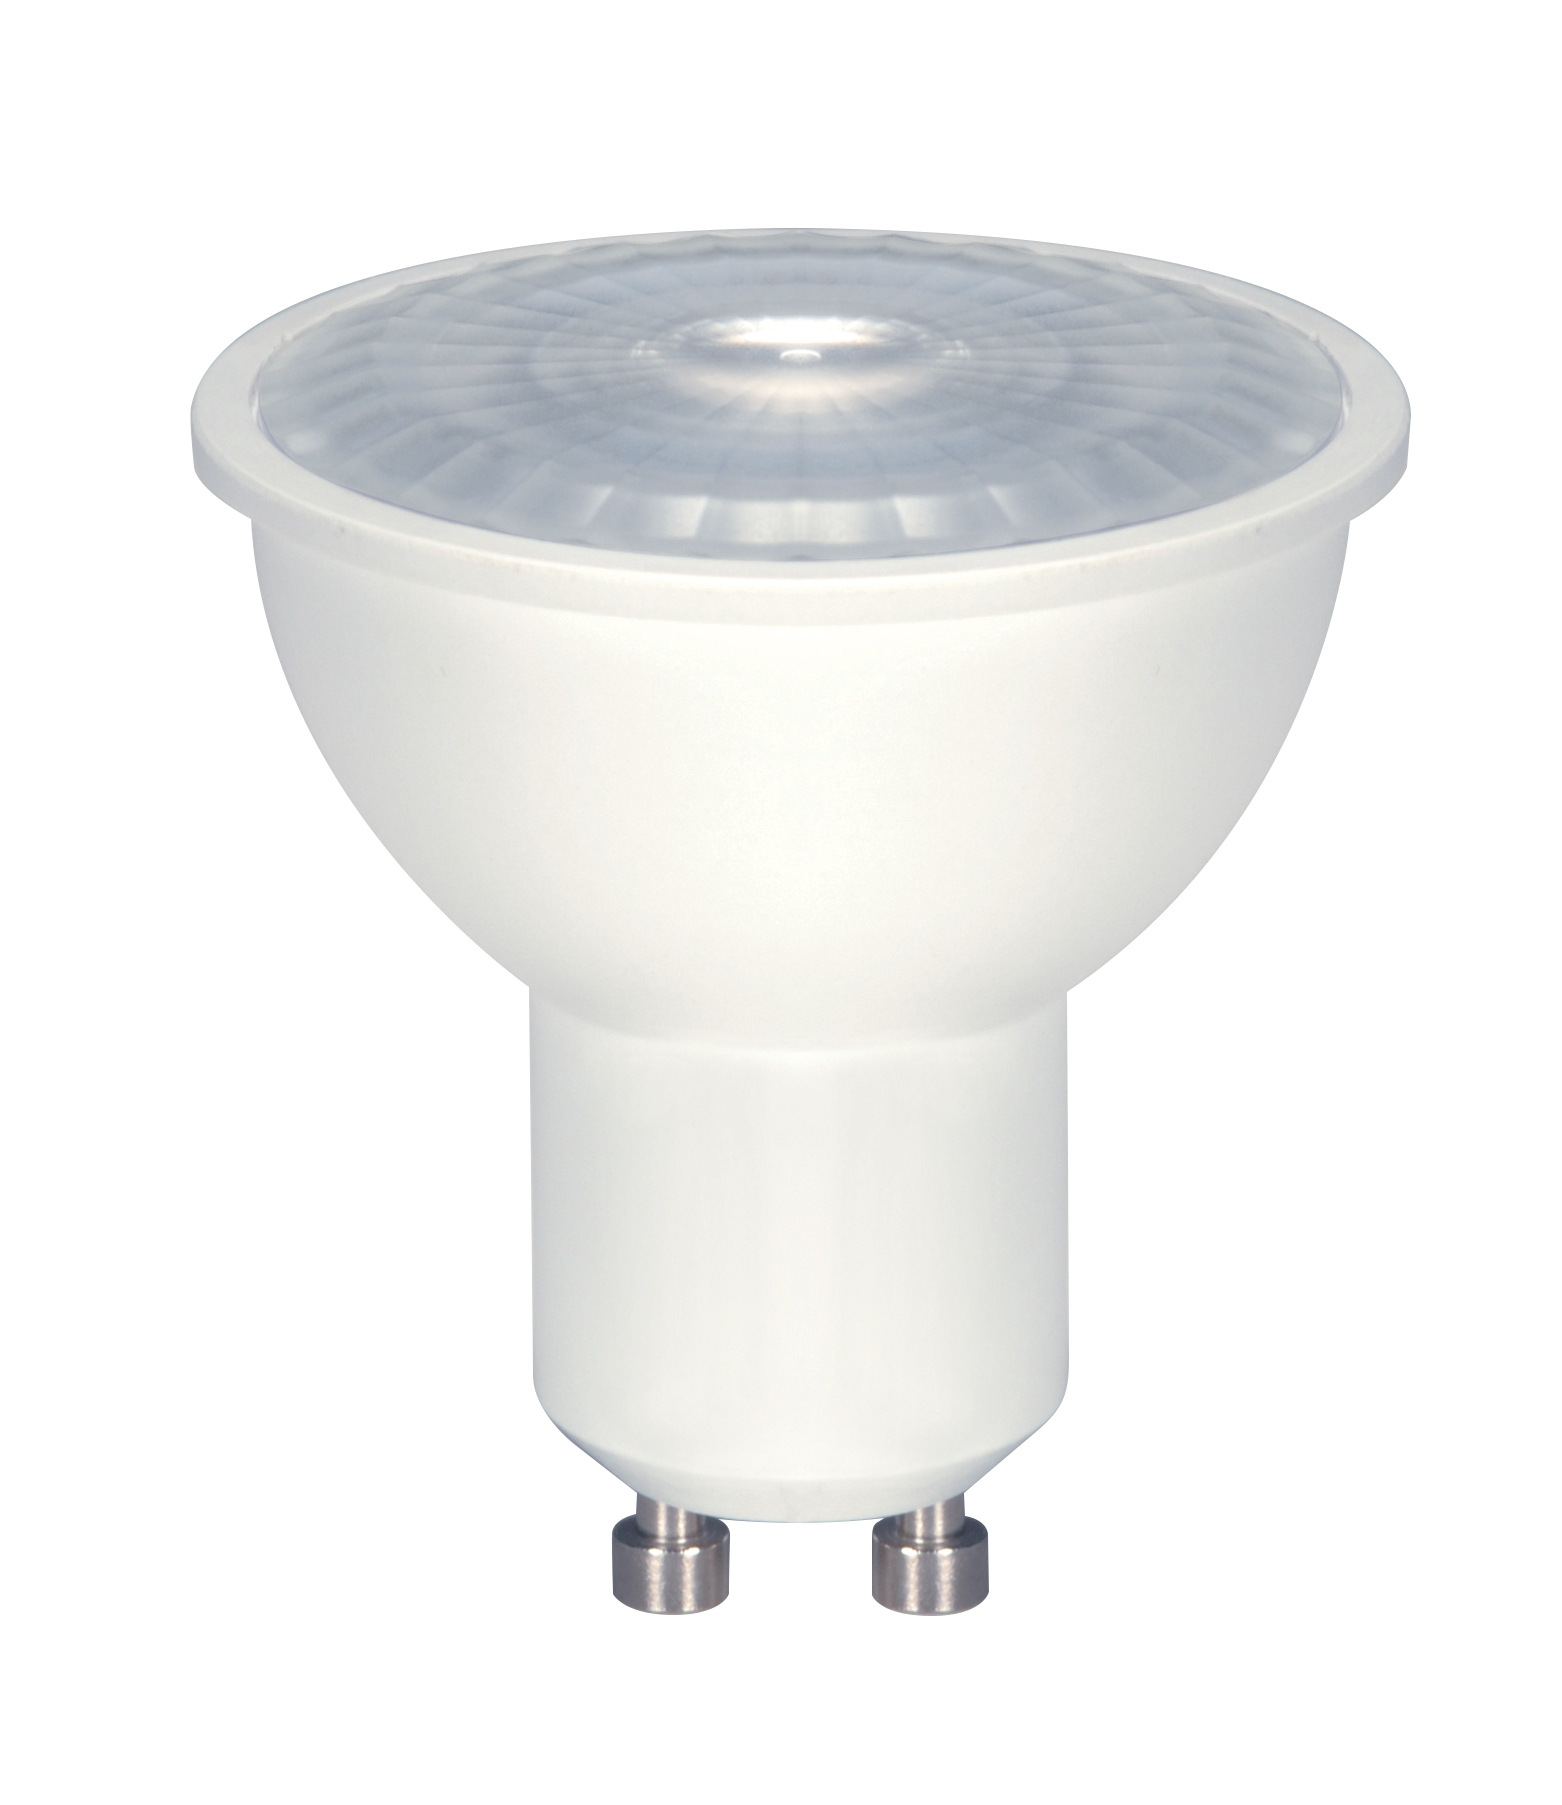 Satco,S9383,SATCO® S9383 Dimmable LED Reflector Lamp, 6.5 W, LED Lamp, GU10 Lamp Base, MR16 Shape, 500 Lumens Initial